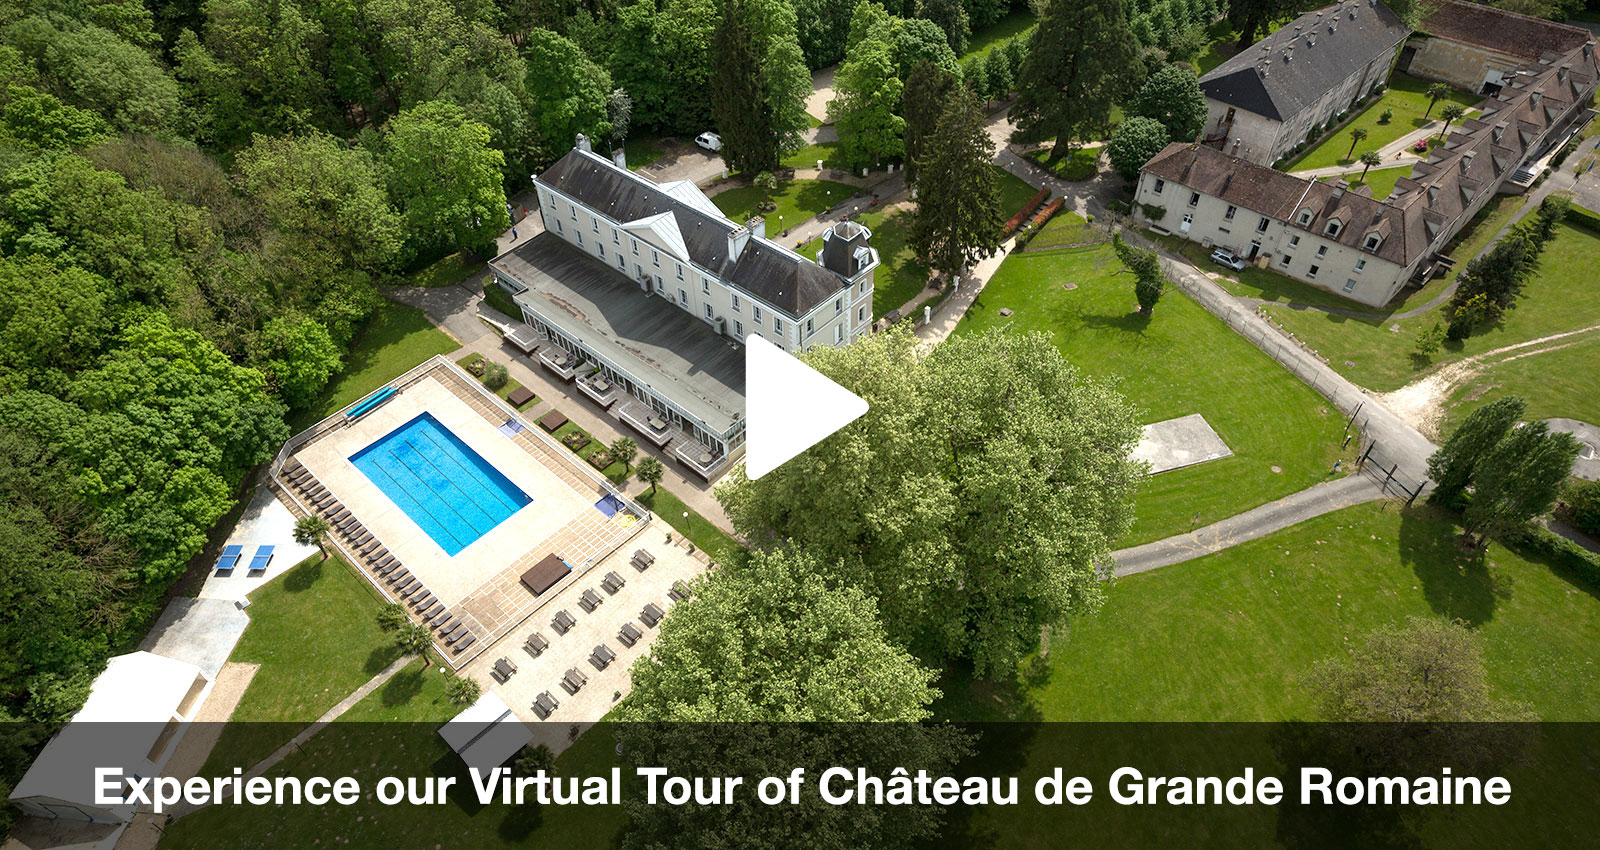 Chateau de Grande Romaine for International Students